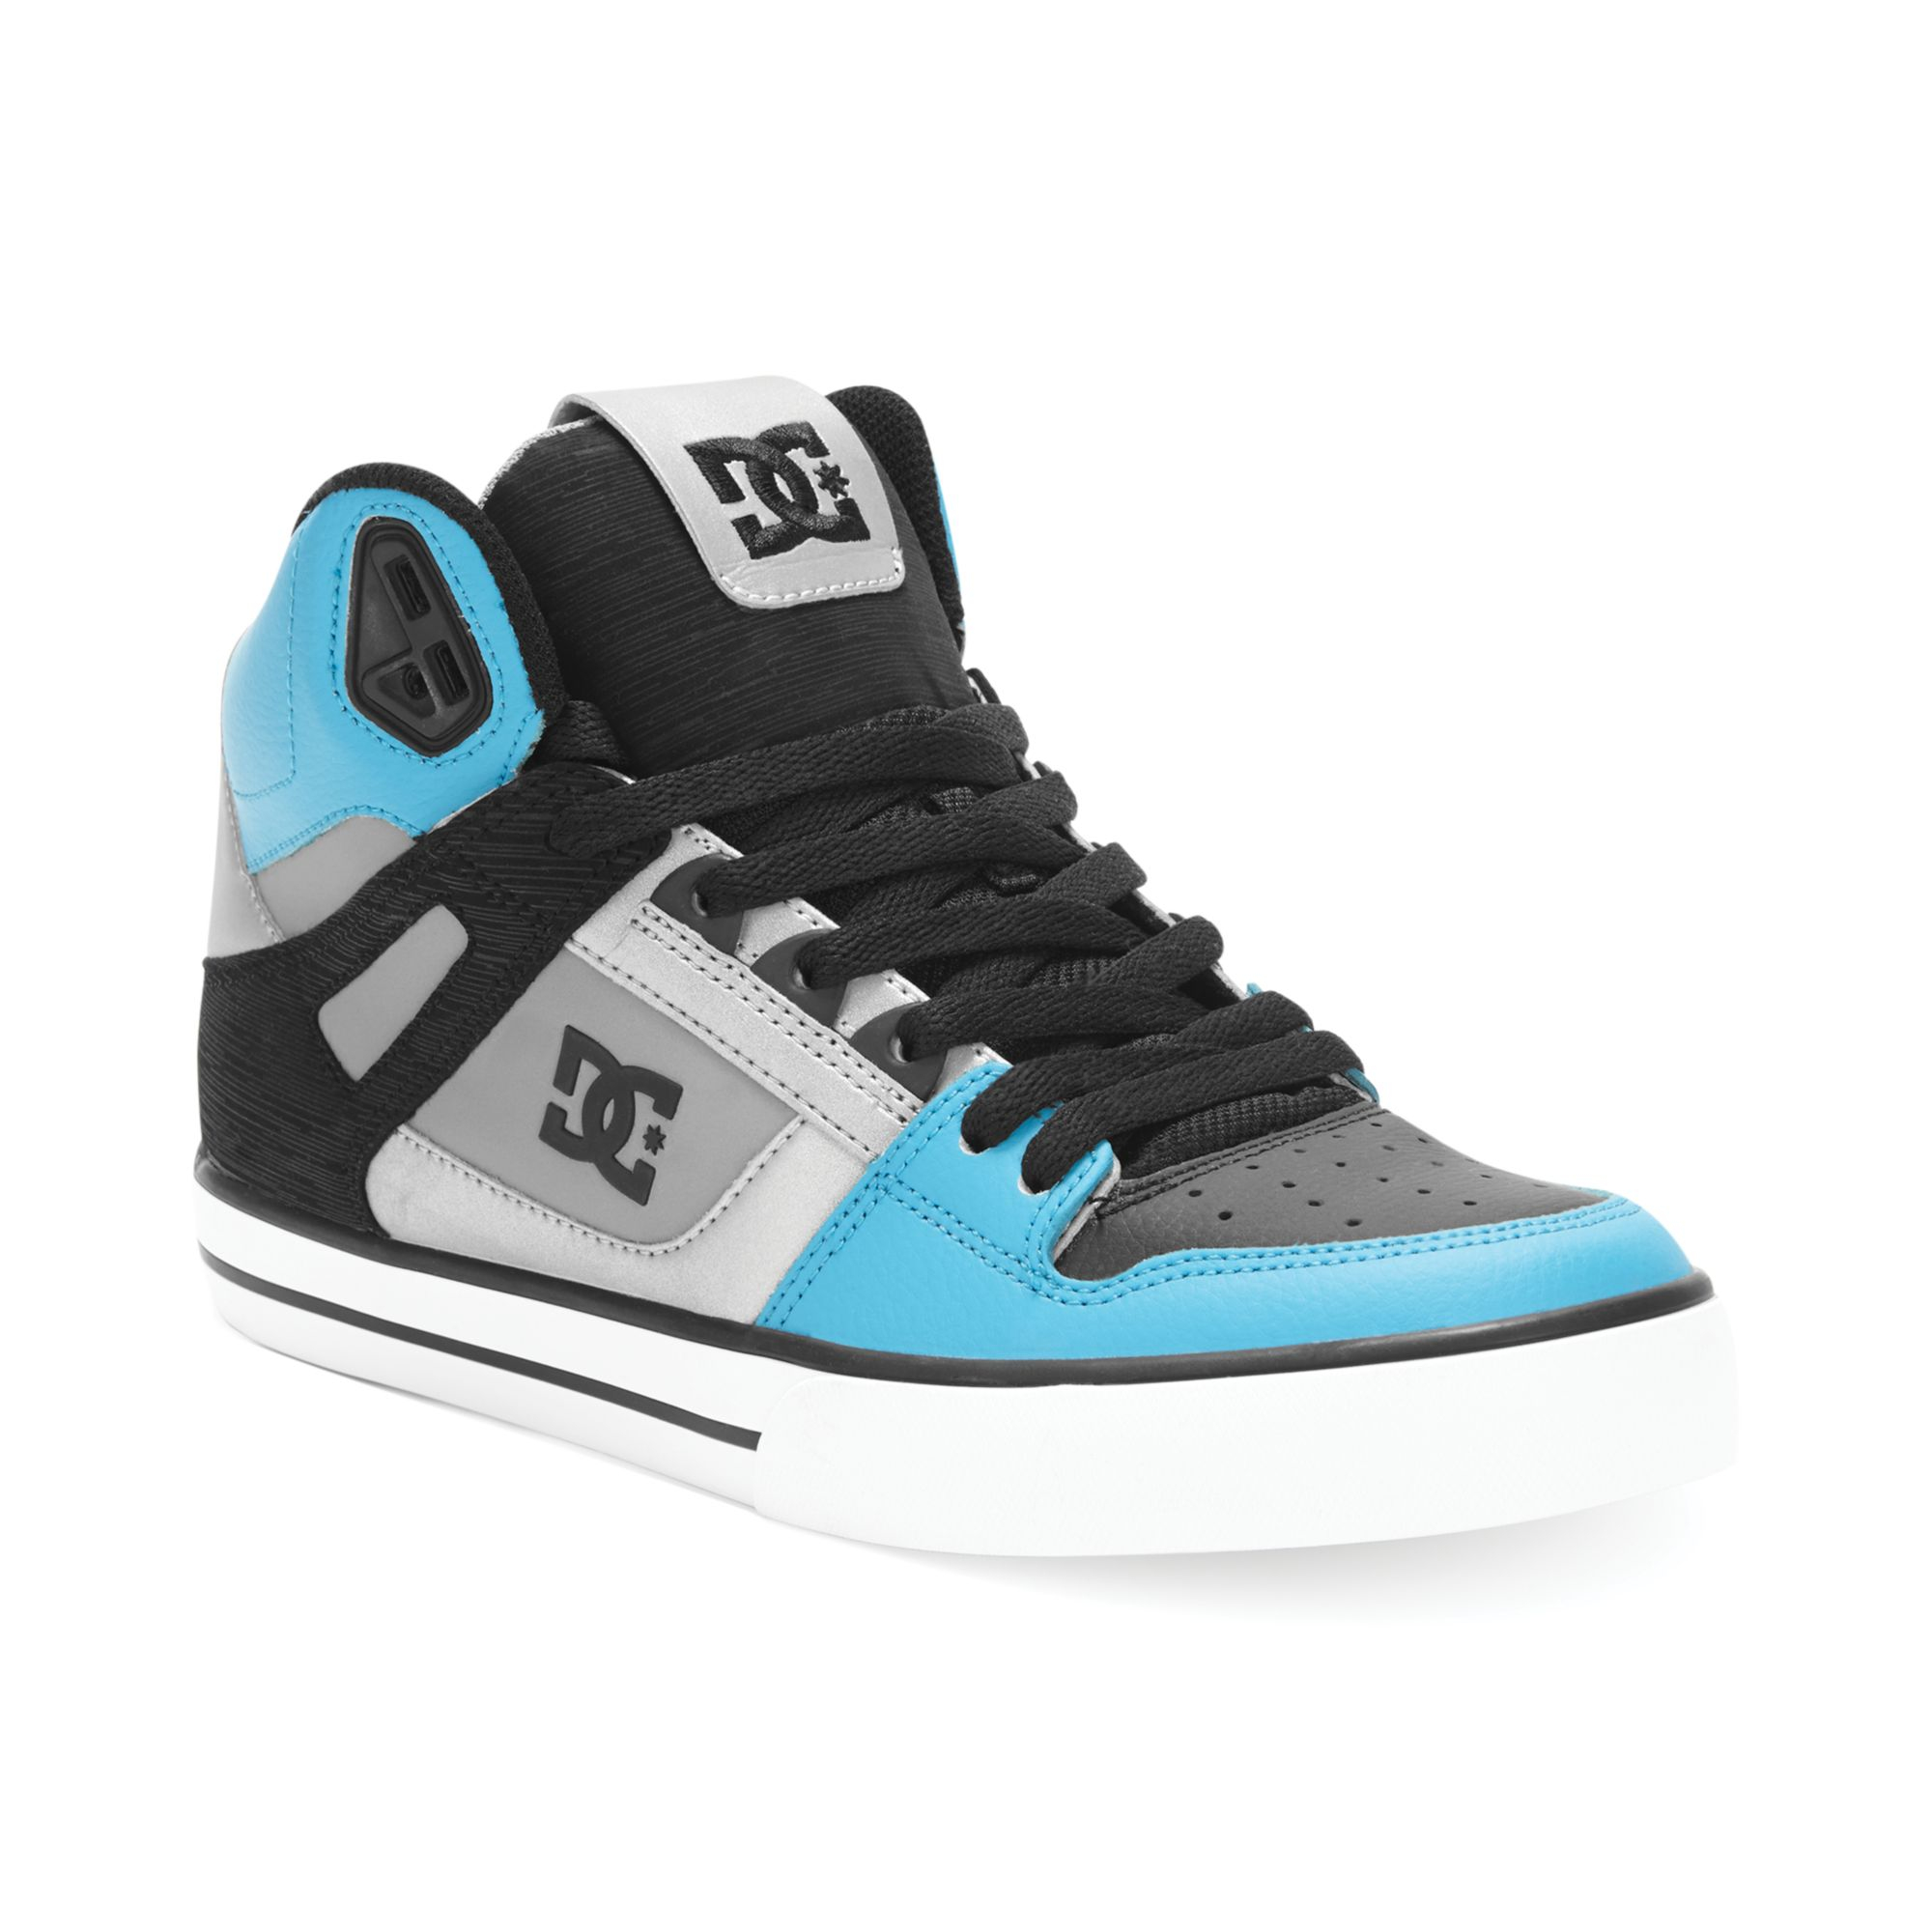 New Dc Shoes For Men